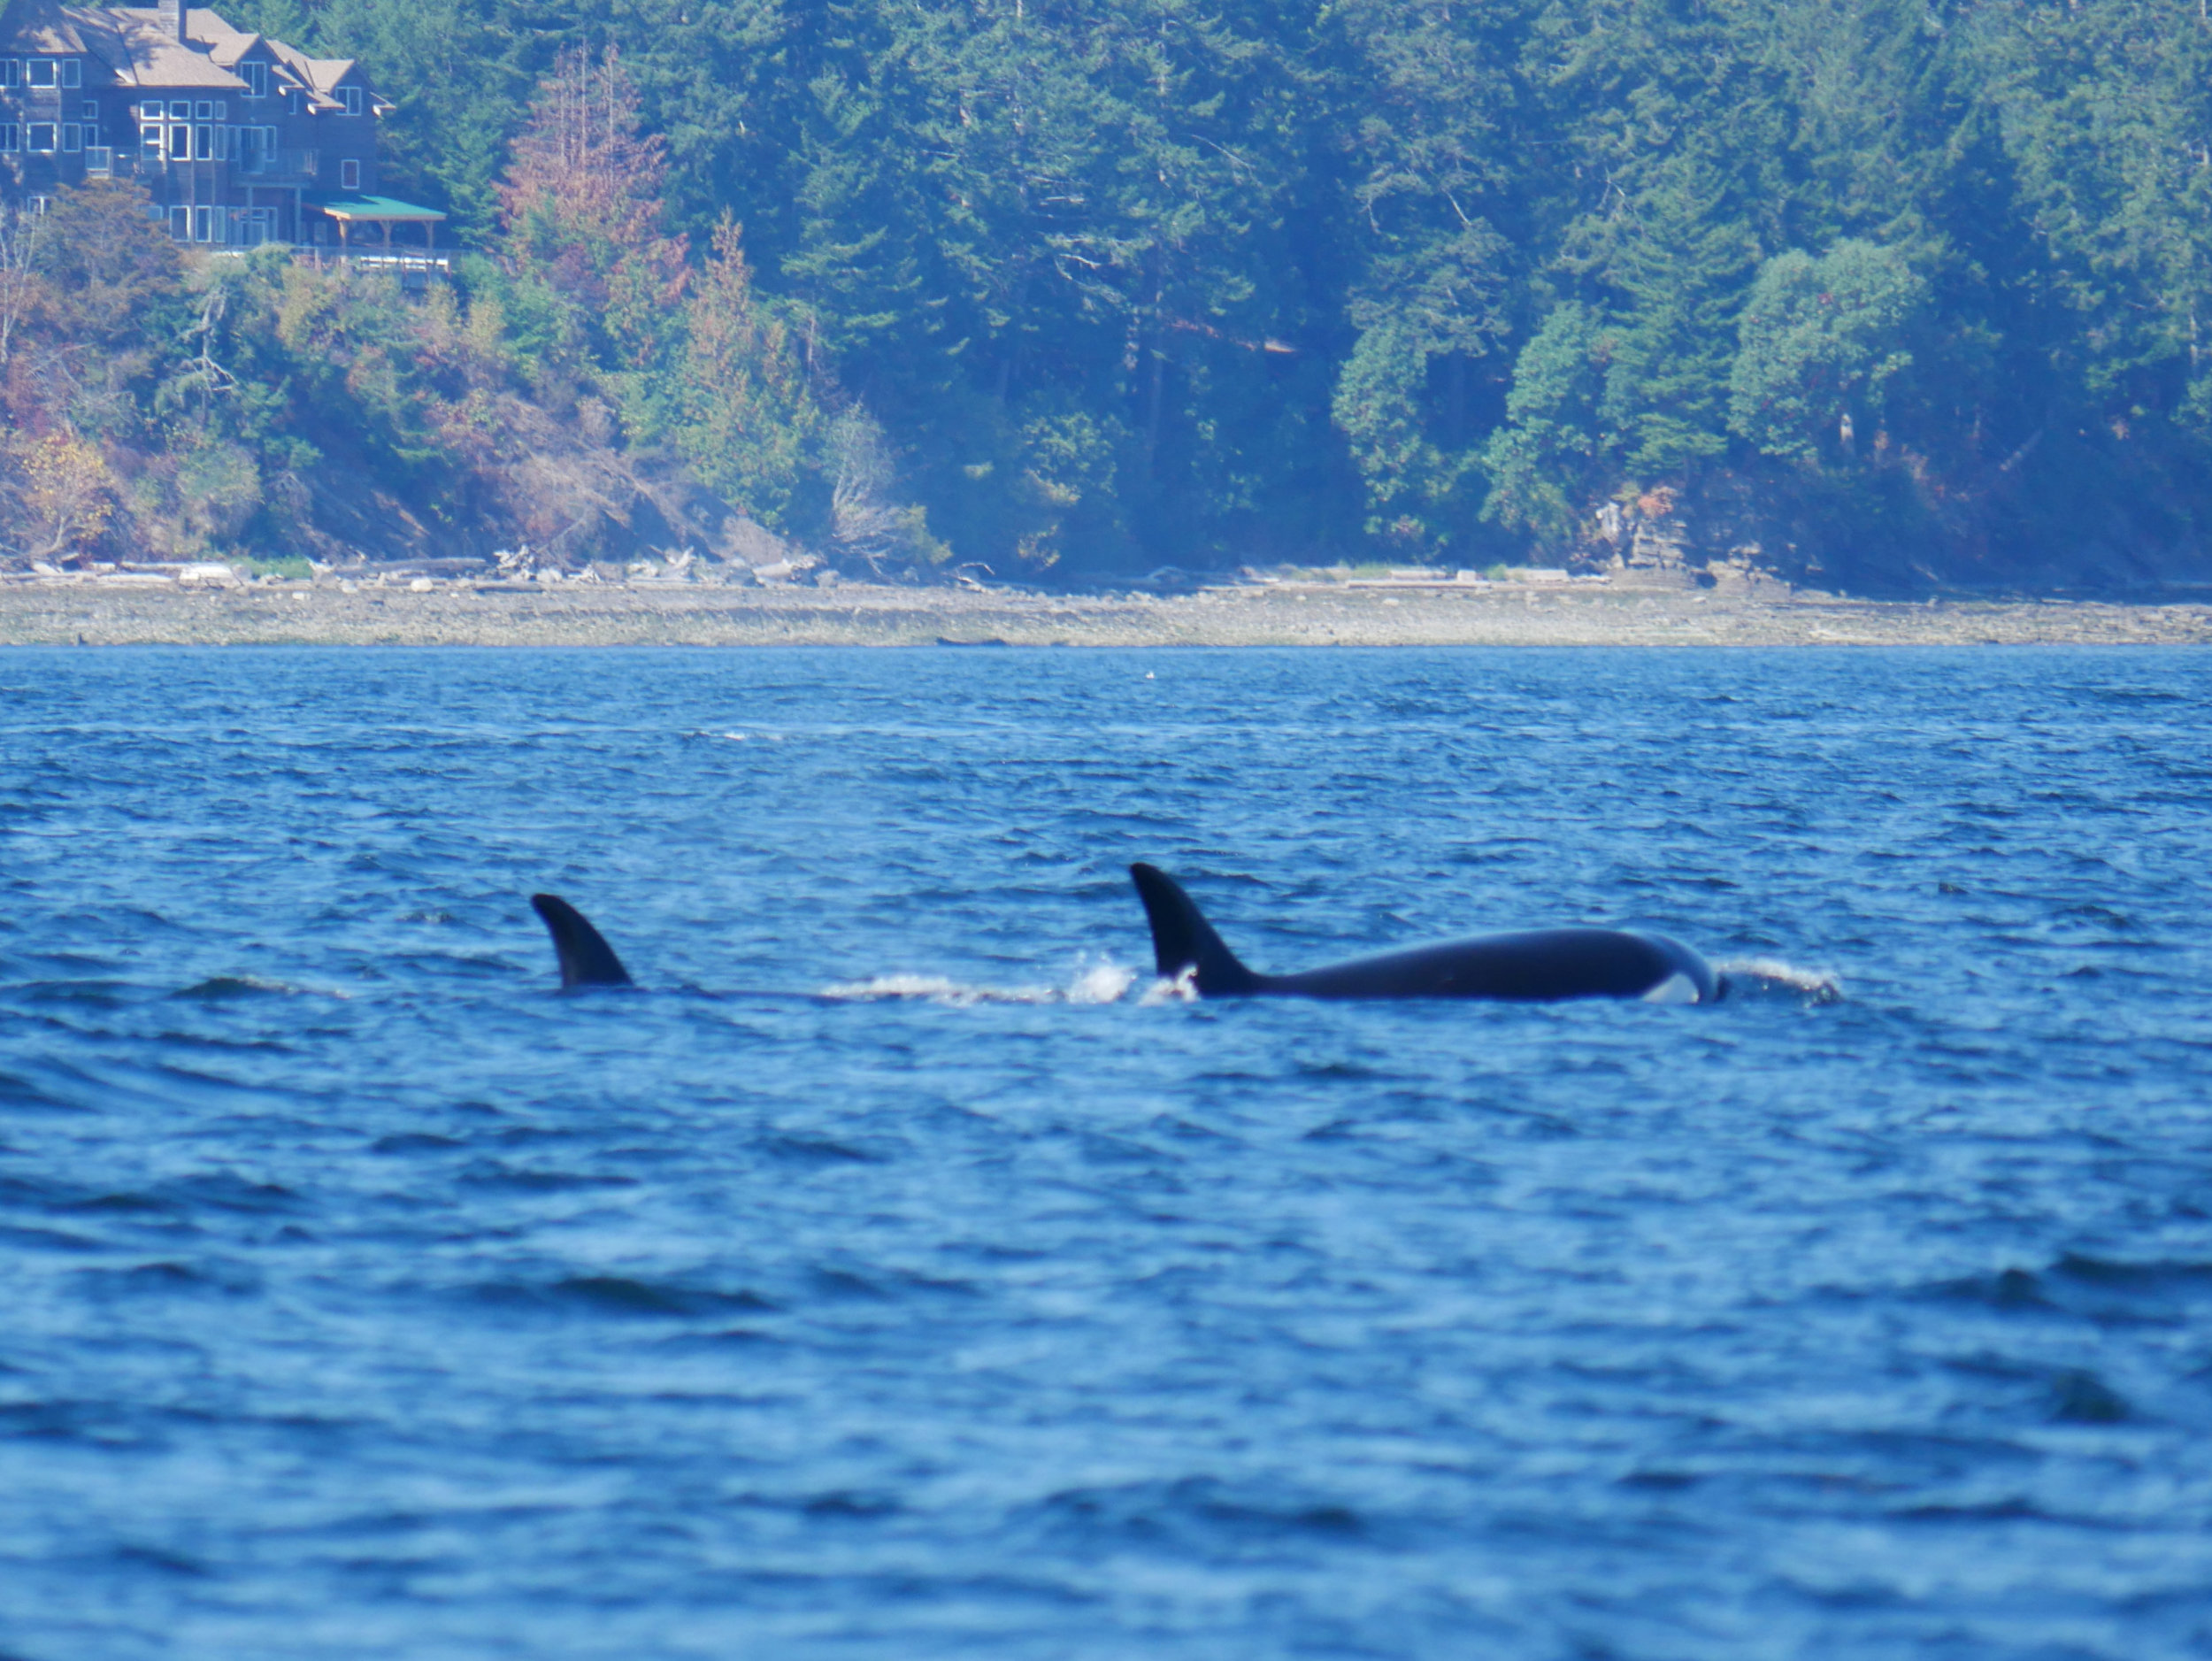 Heres a surface with the Saltspring shoreline in the background! Photo by Val Watson.